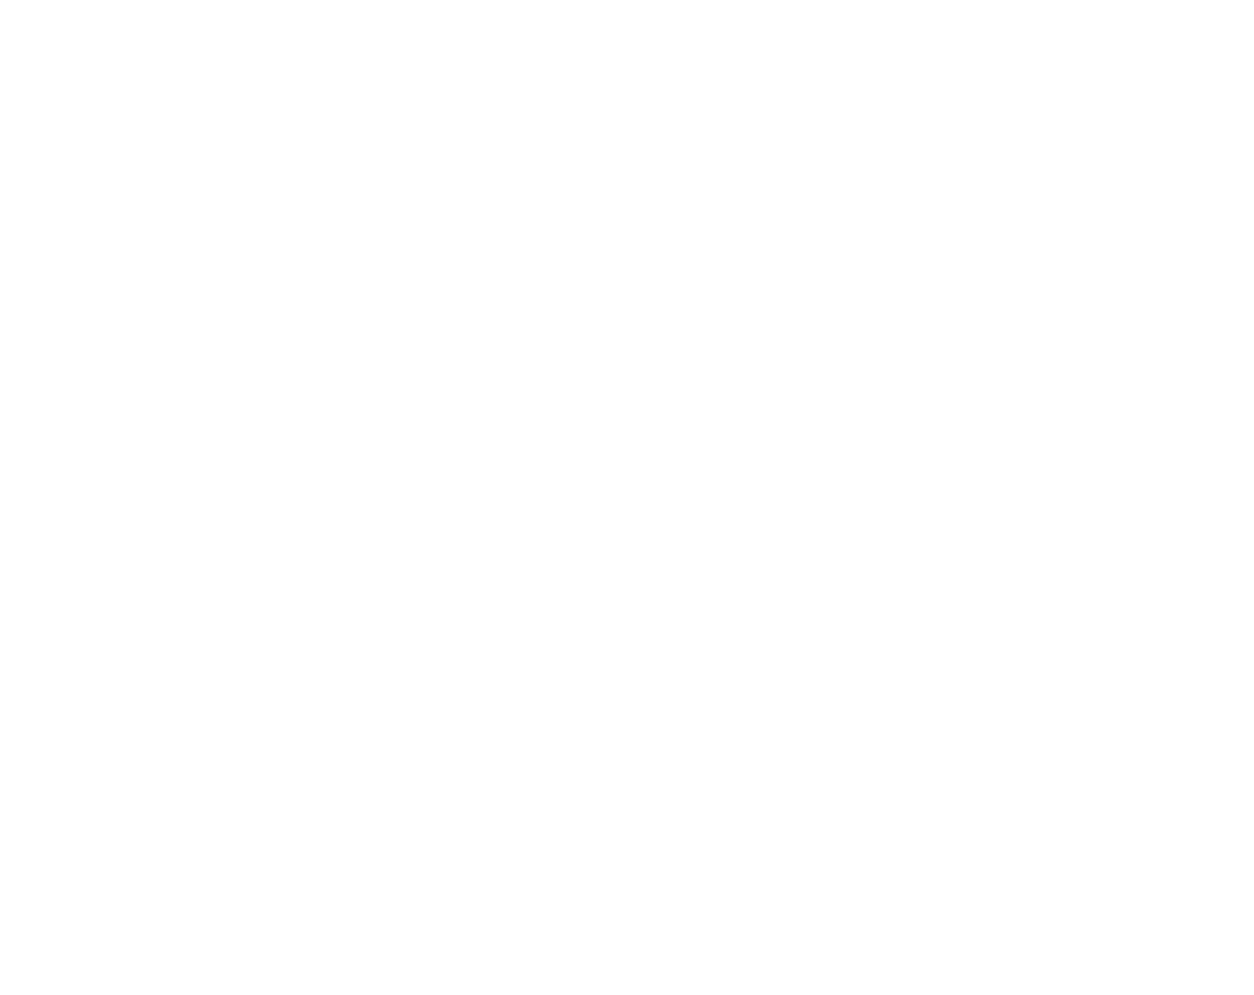 assassin pest solution logo